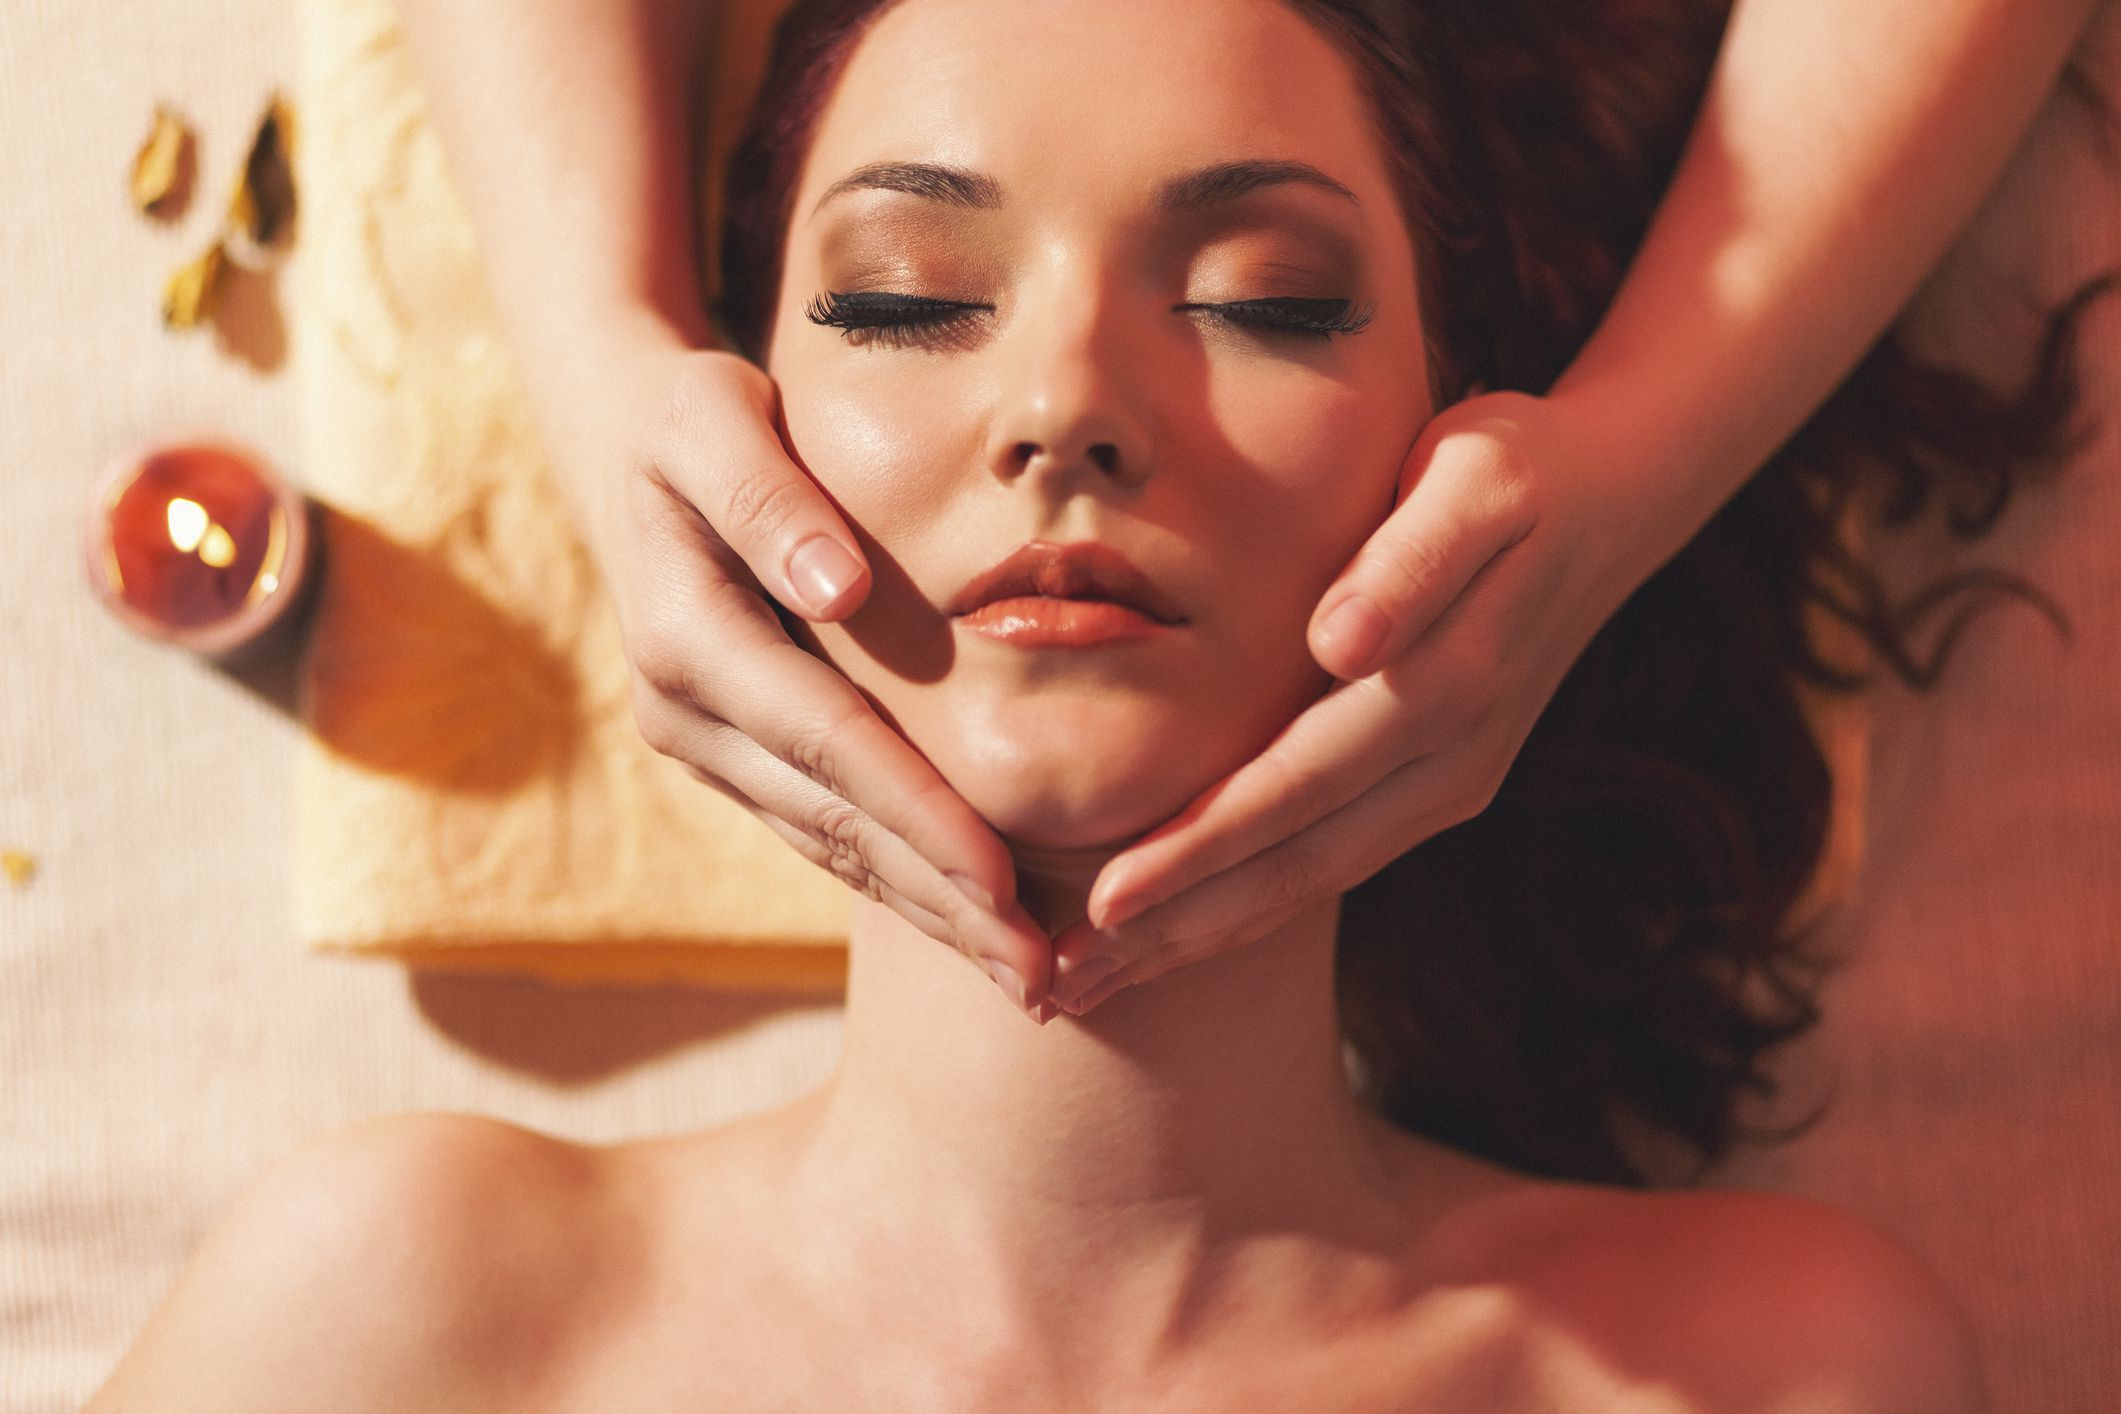 A Sensual Massage sensual massage—what it is and how to give it